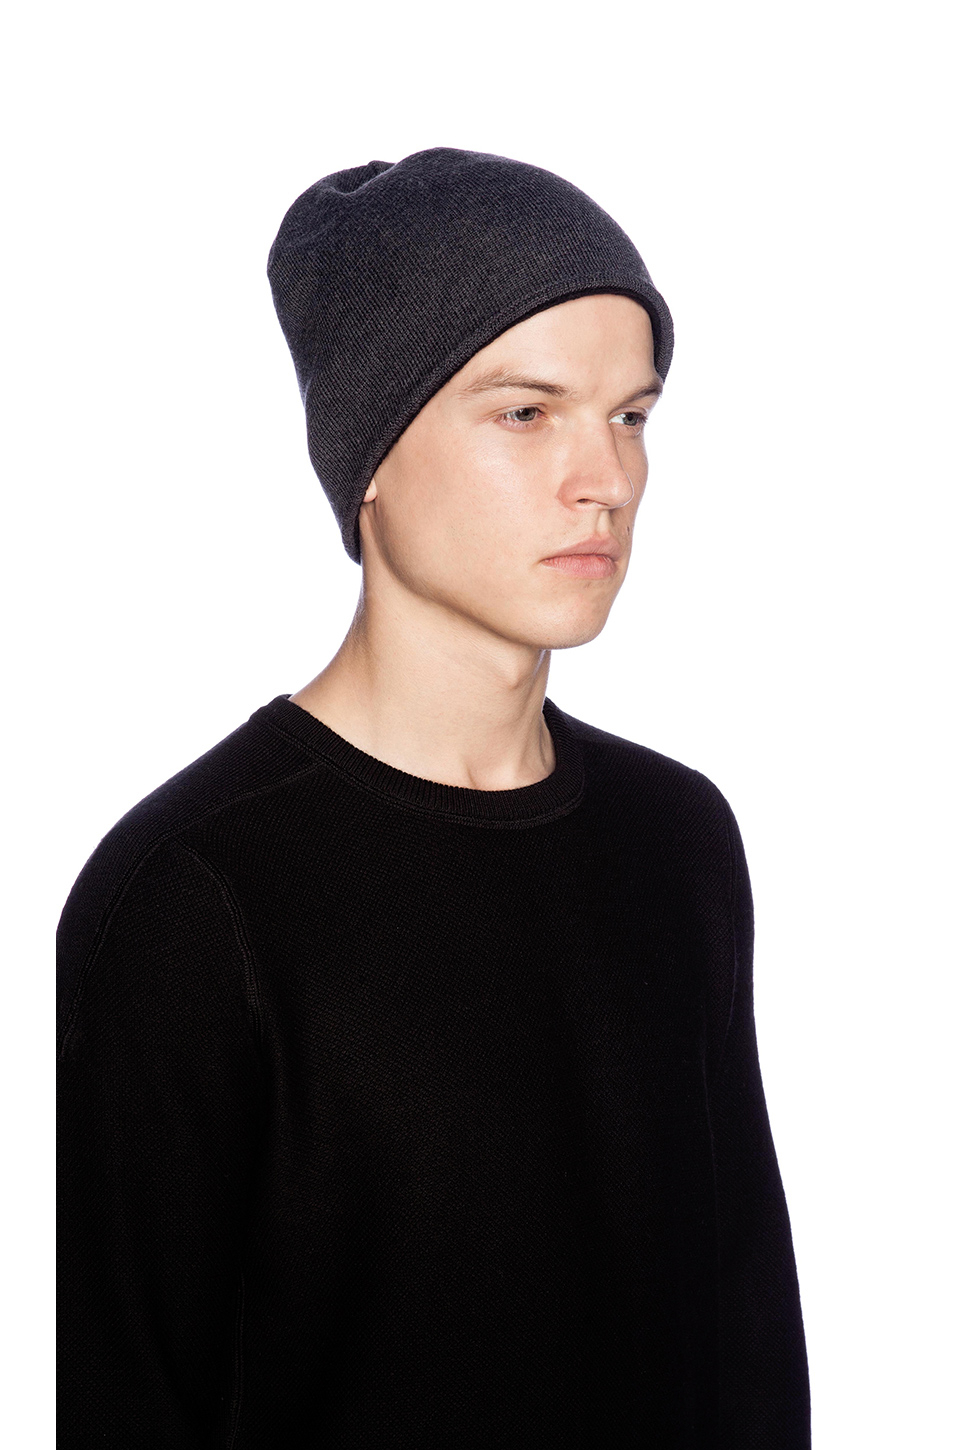 Lyst - Canada Goose Merino Wool Beanie in Gray for Men 82099166125